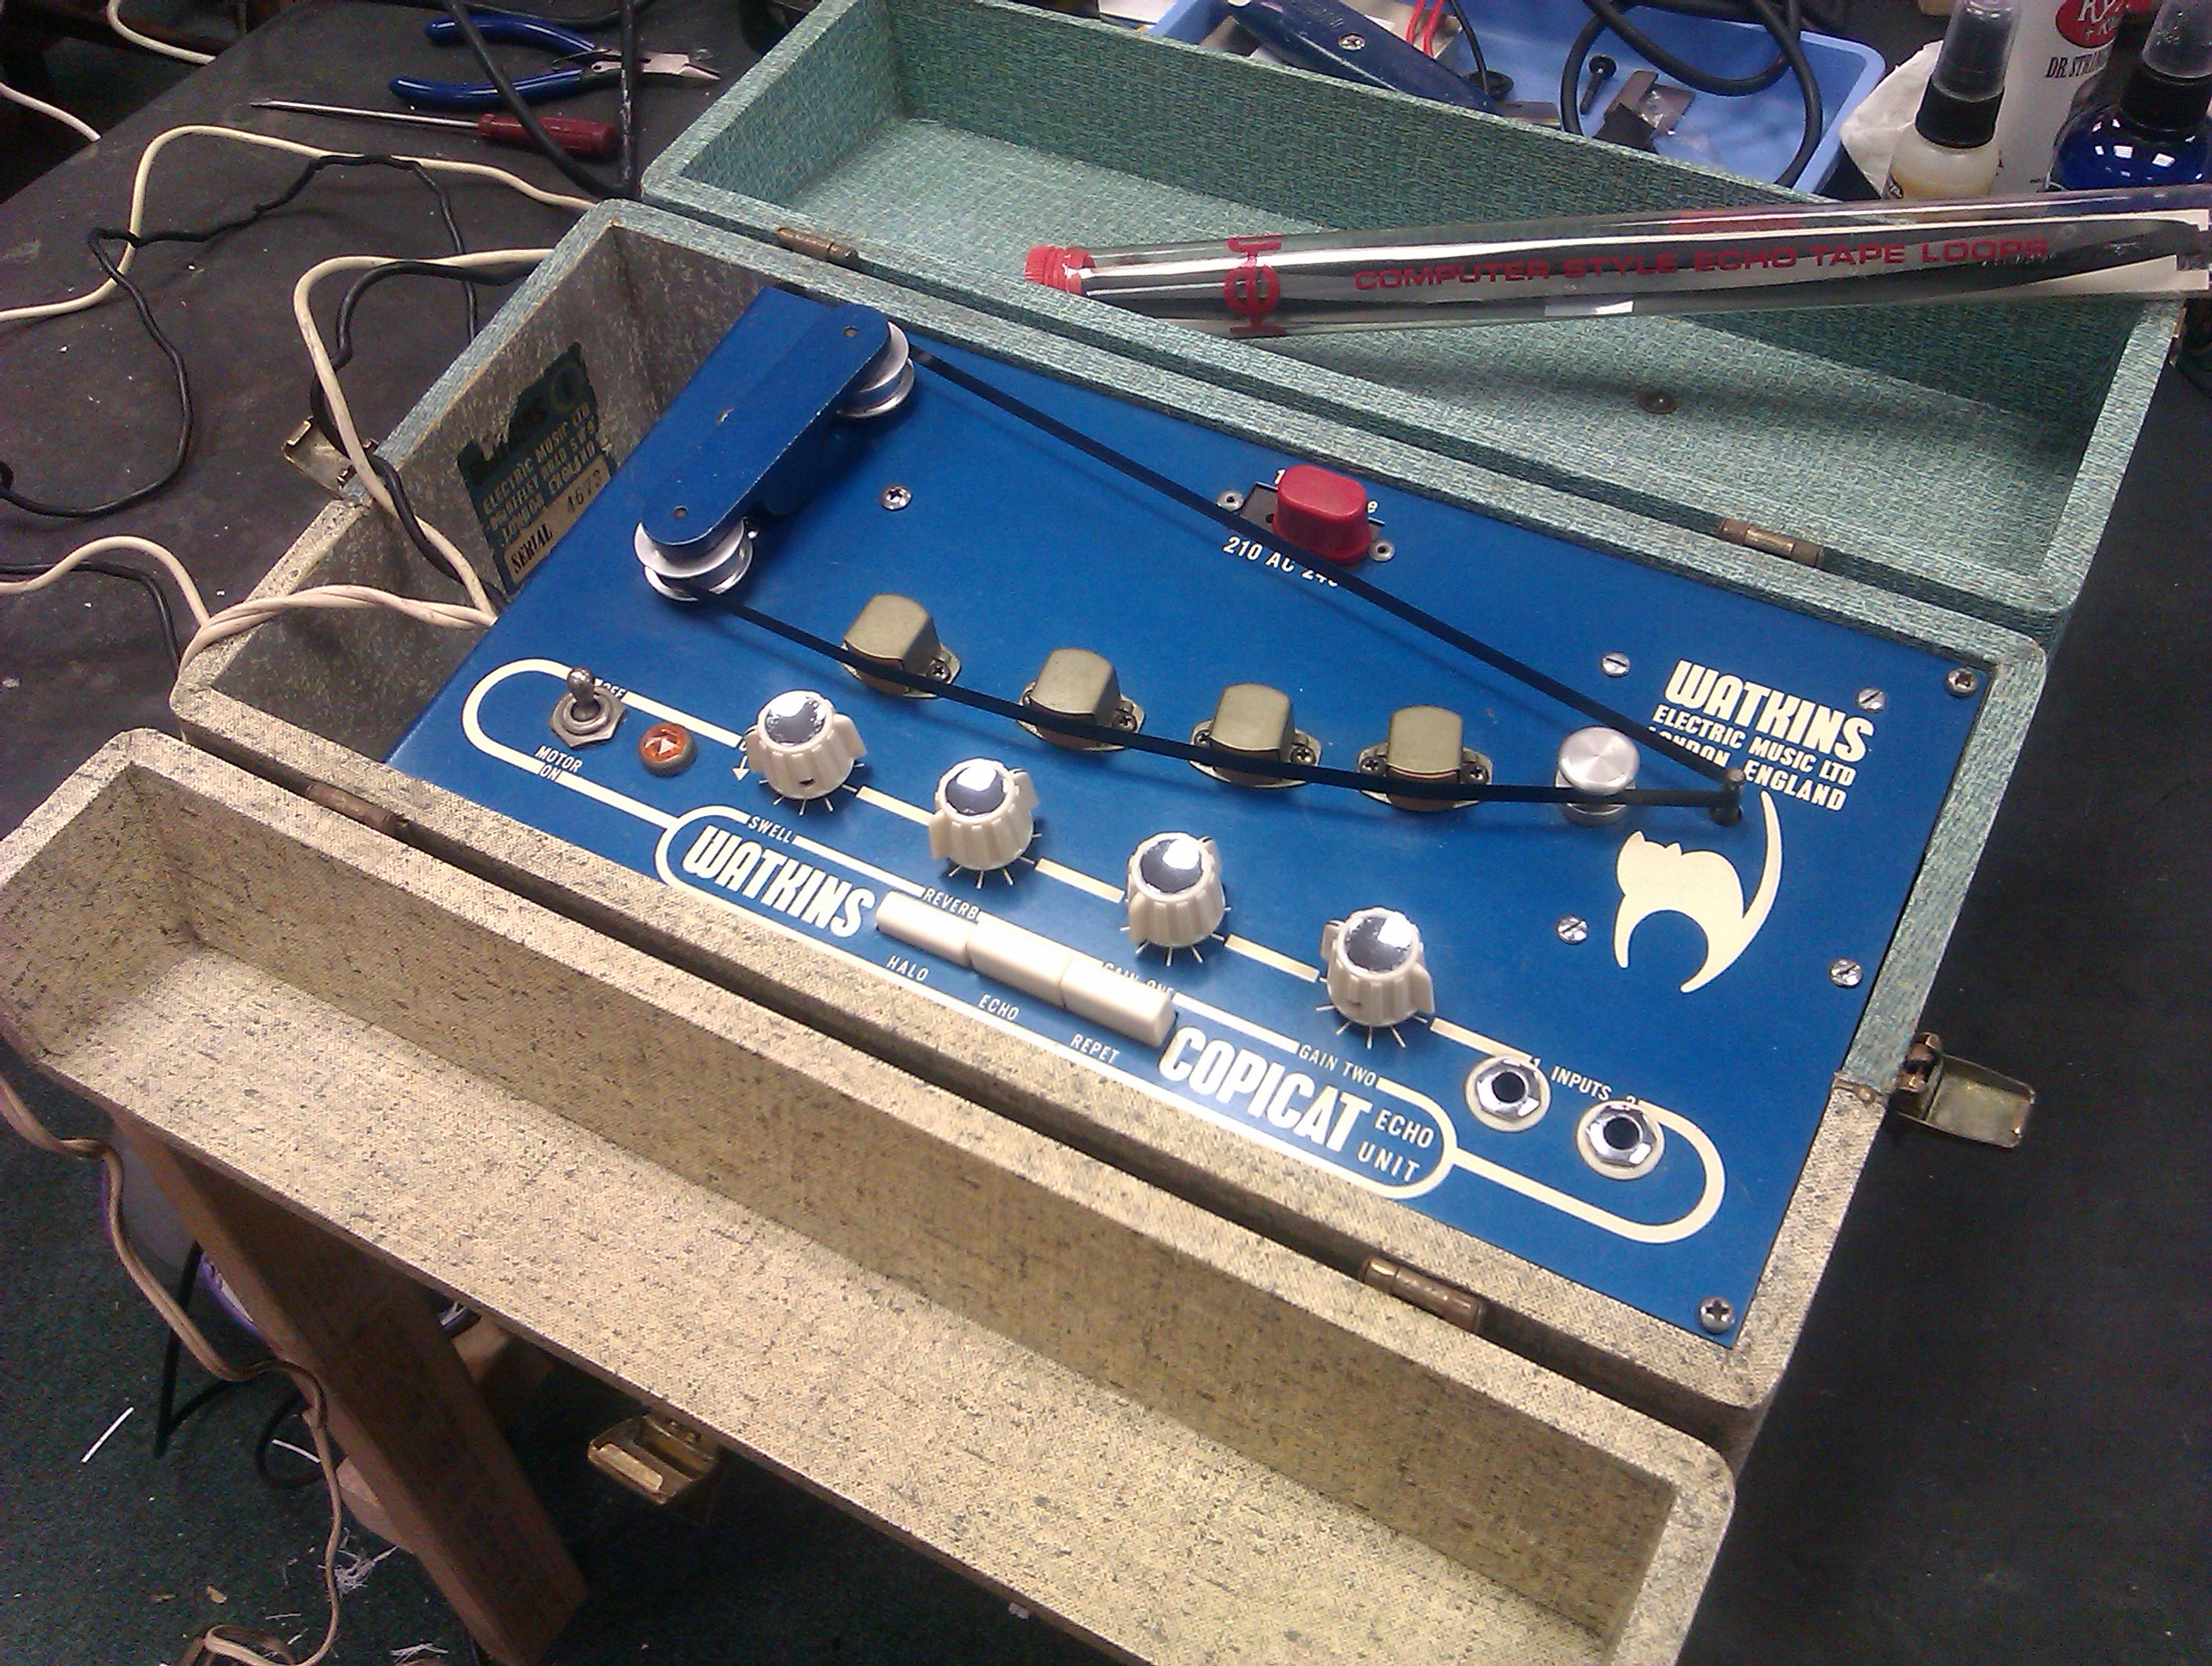 Sought after valve powered classic British tape echo unit